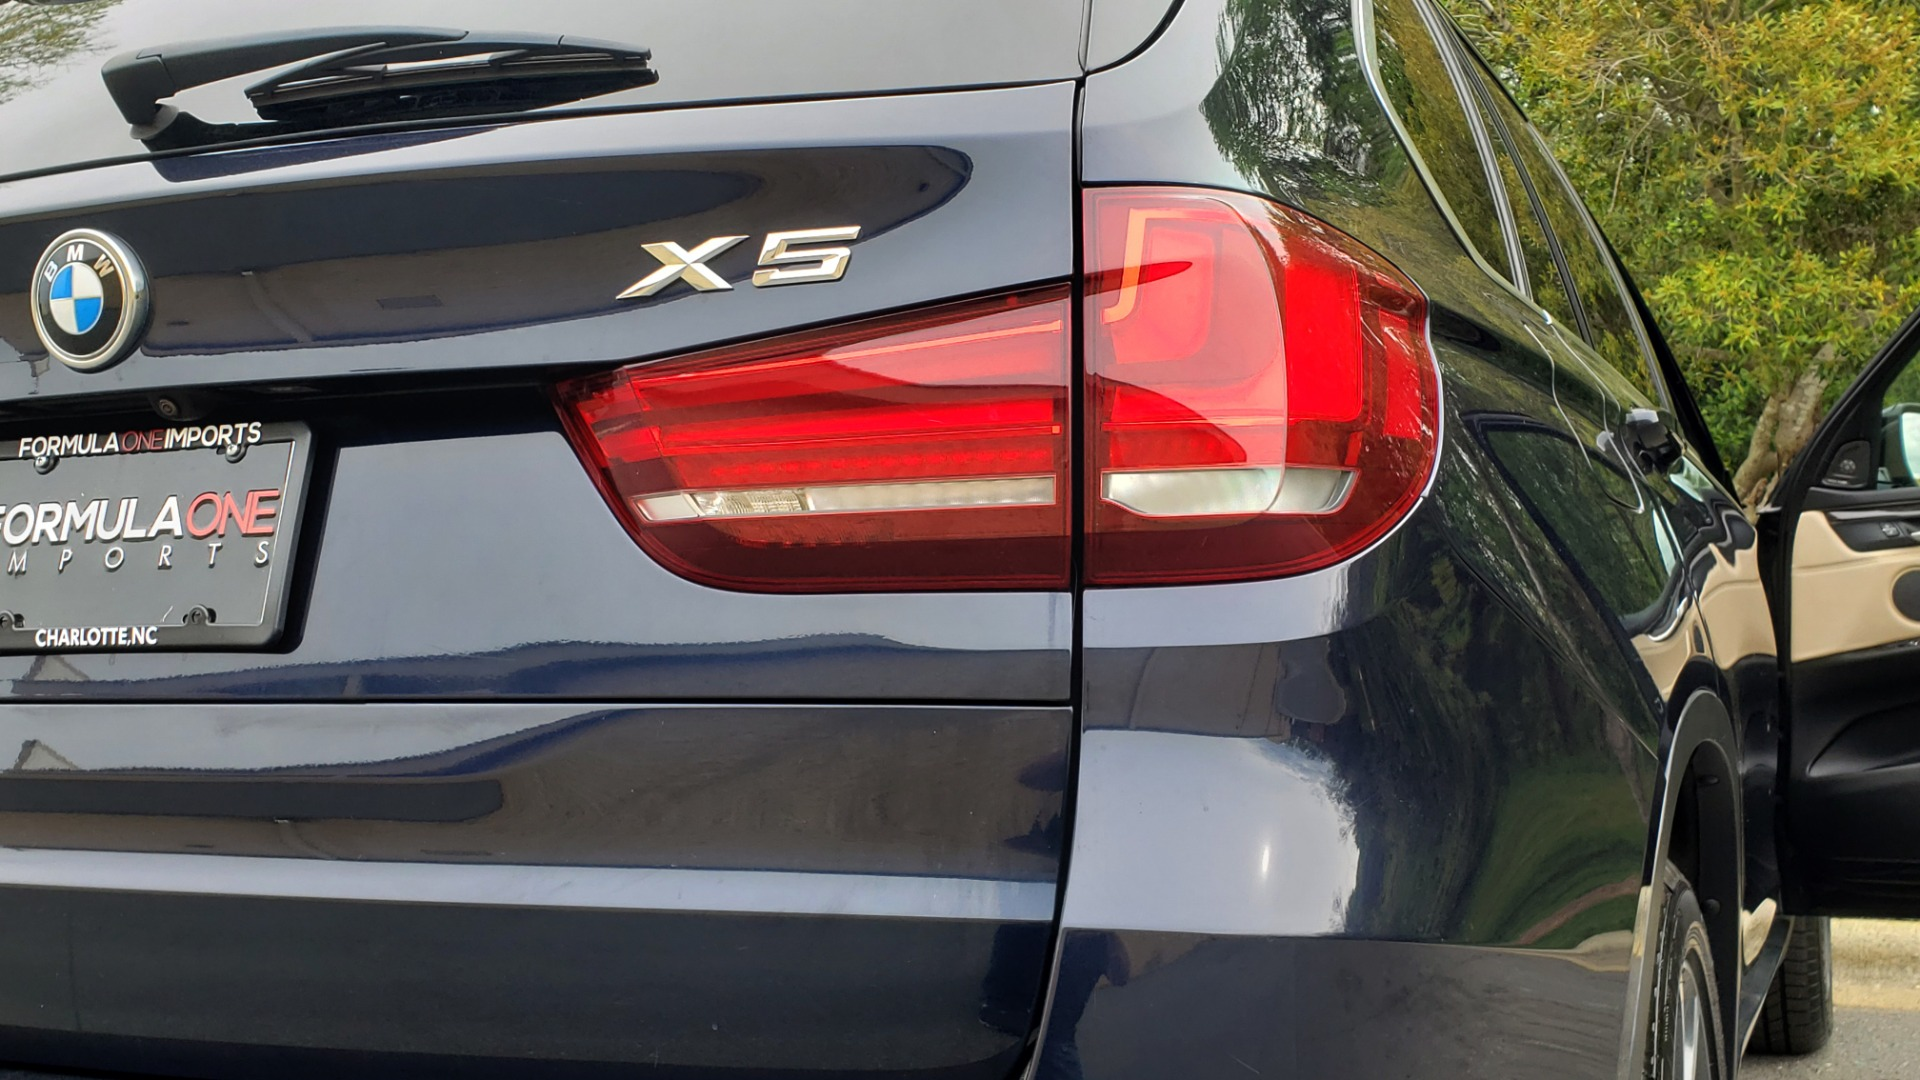 Used 2017 BMW X5 xDrive35i for sale Sold at Formula Imports in Charlotte NC 28227 29